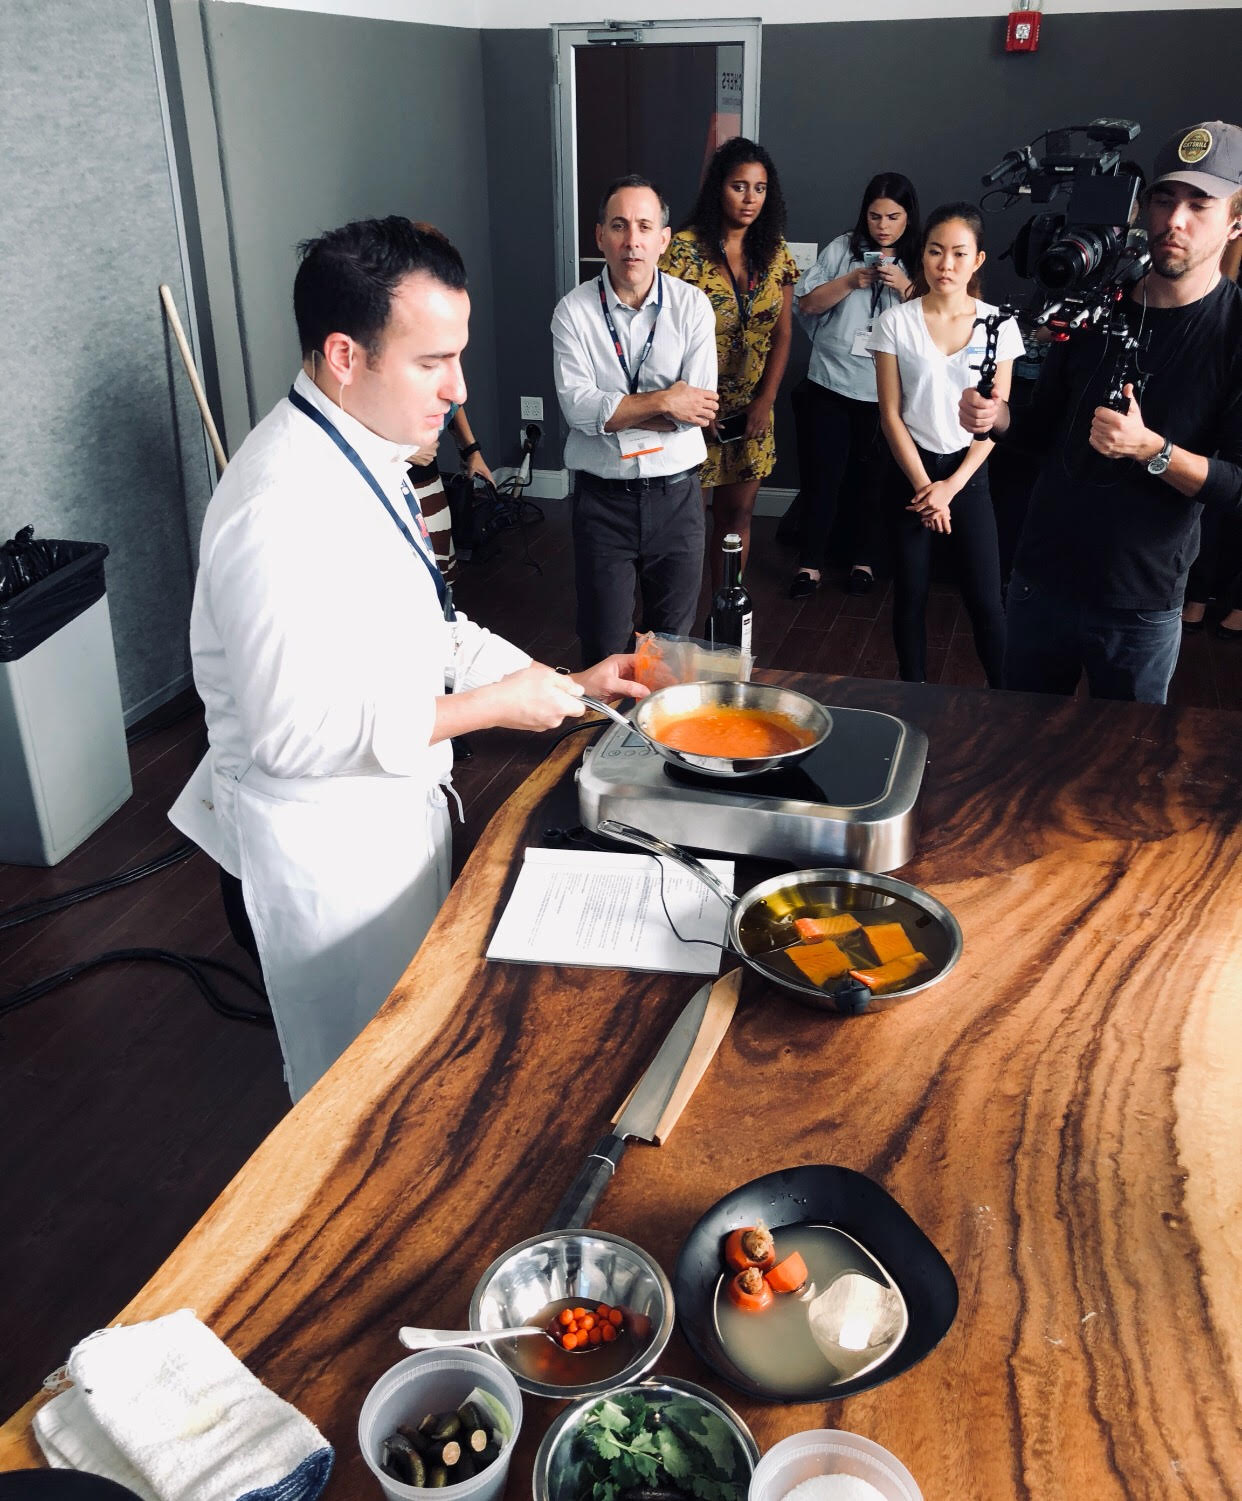 Starchefs ICC 2017 workshop with californios chef val cantu using Ora King Salmon and the breville polyscience control freak